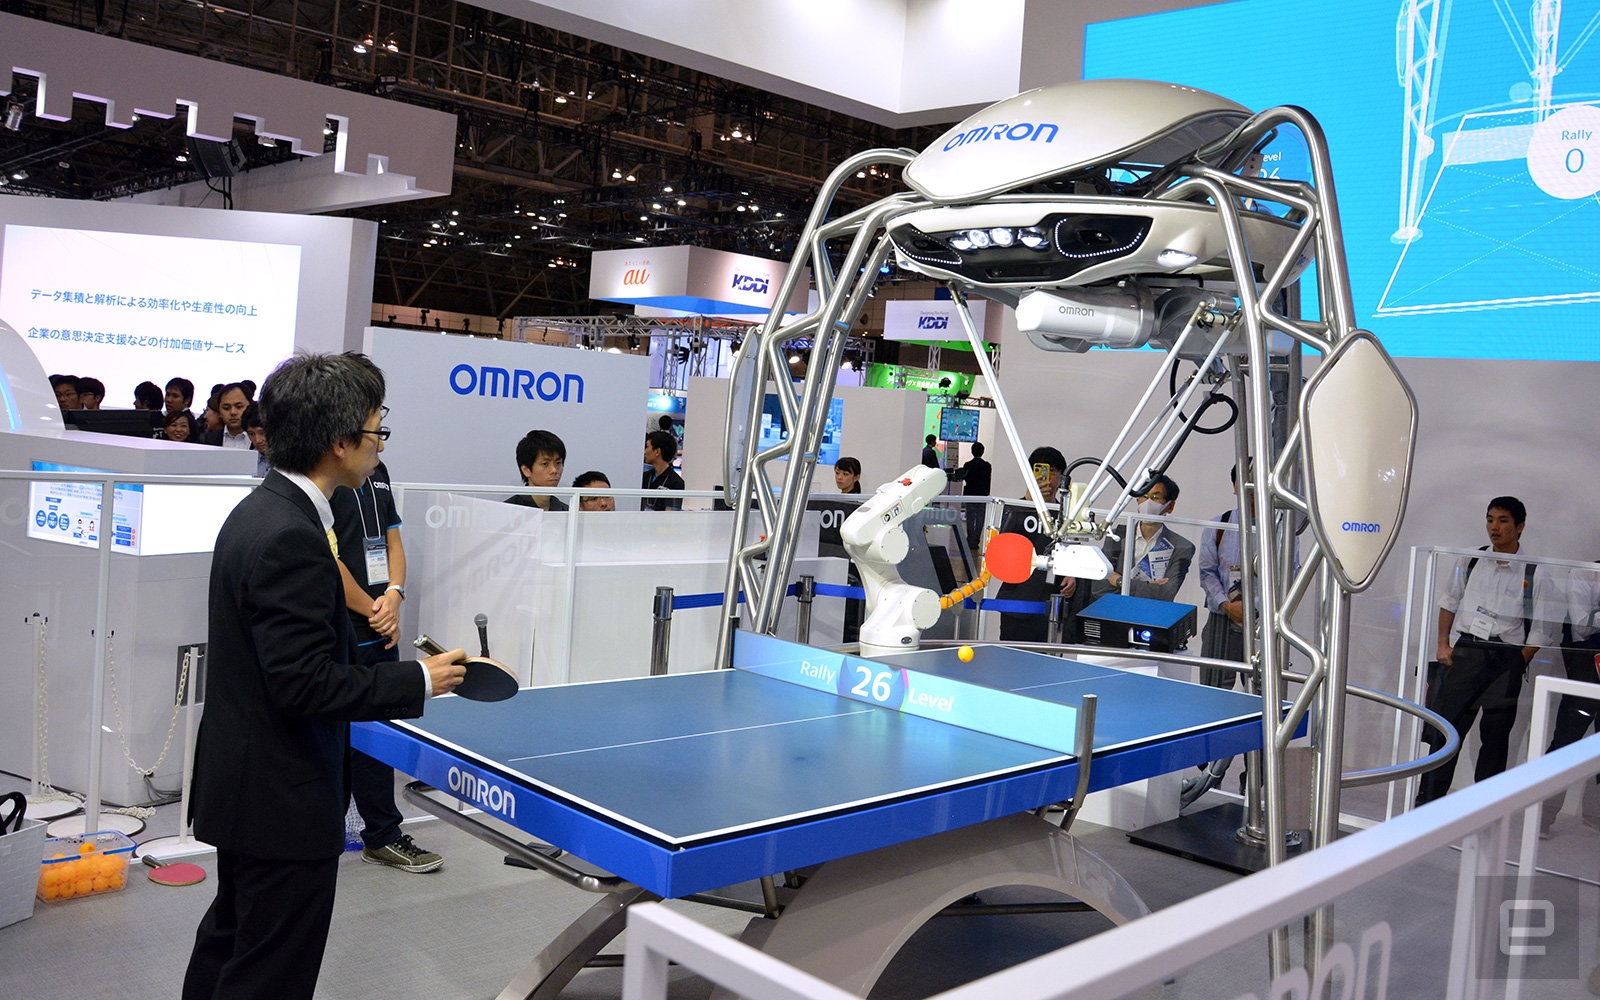 OMRON's updated ping pong robot can serve and take smashes | DeviceDaily.com